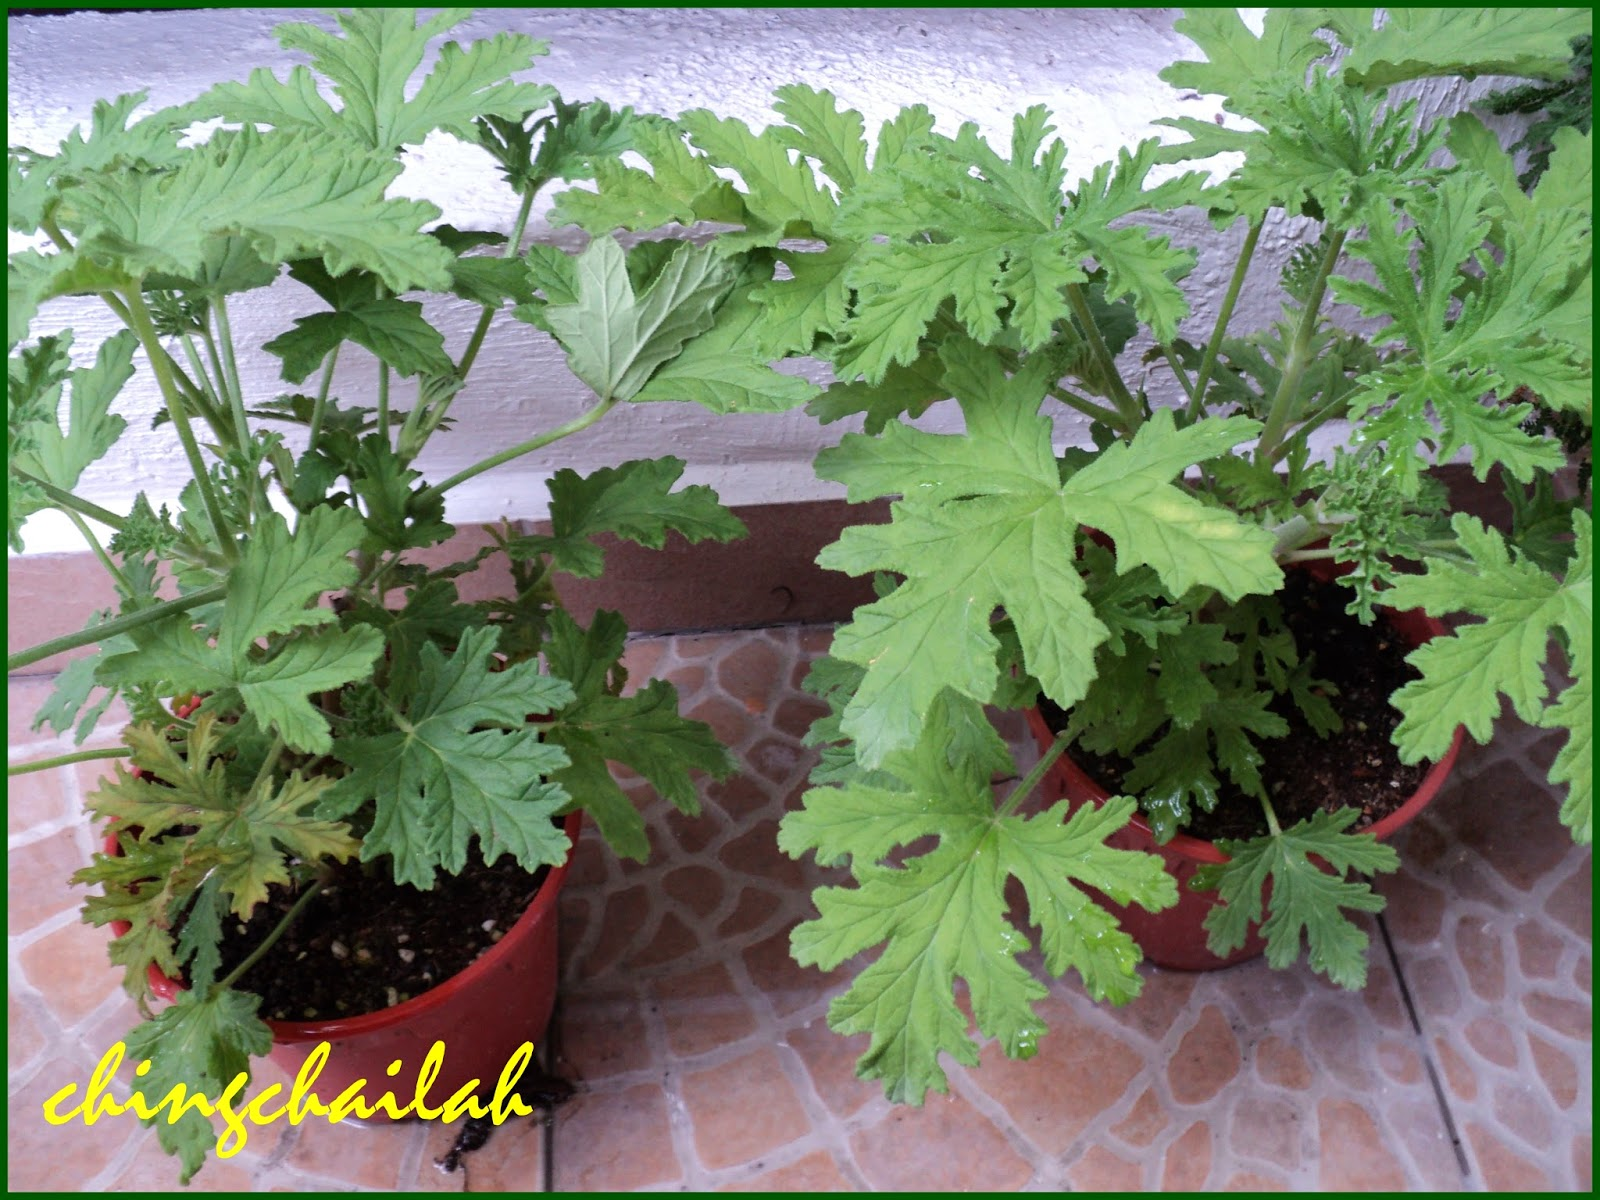 Simple living in nancy citrosa or mosquito repellent plant in my garden - Mosquito repellent plants ...